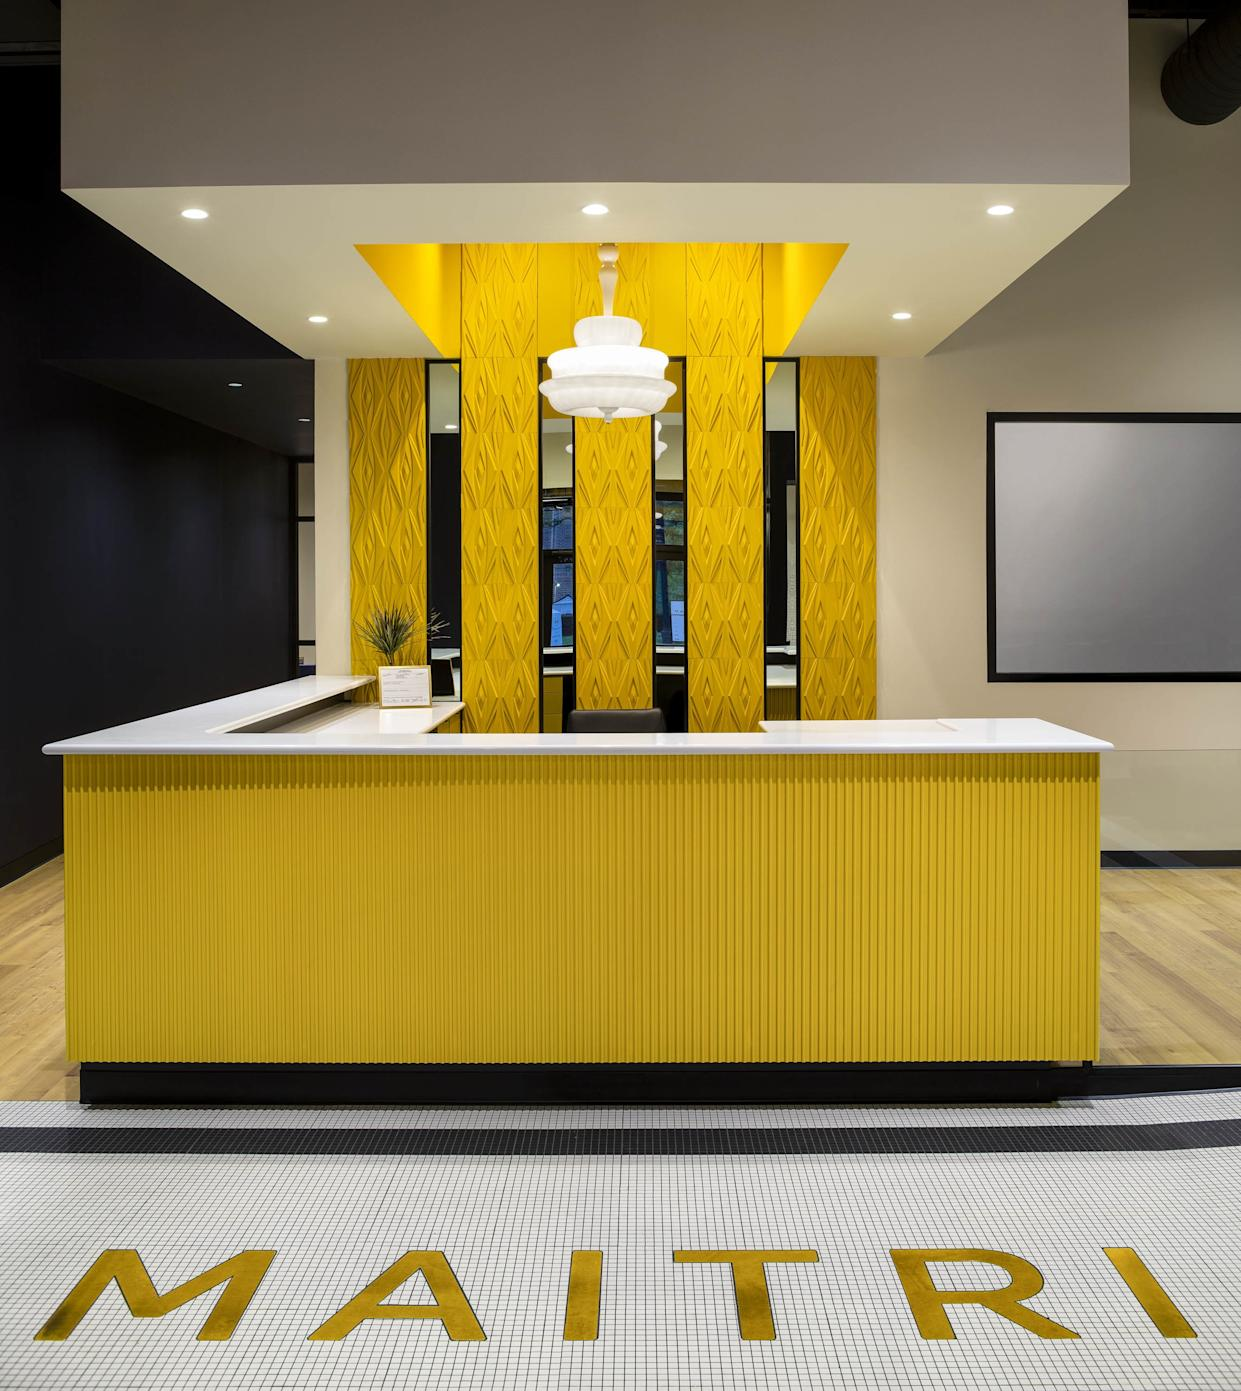 "<h1 class=""title"">HARRY WINSTON 200 POST ST, SAN FRANCISICO</h1> <div class=""caption""> The reception desk at Maitri Medicinals in Pennsylvania, another High Road Studio project. </div> <cite class=""credit"">Photo: Richard Cadan</cite>"